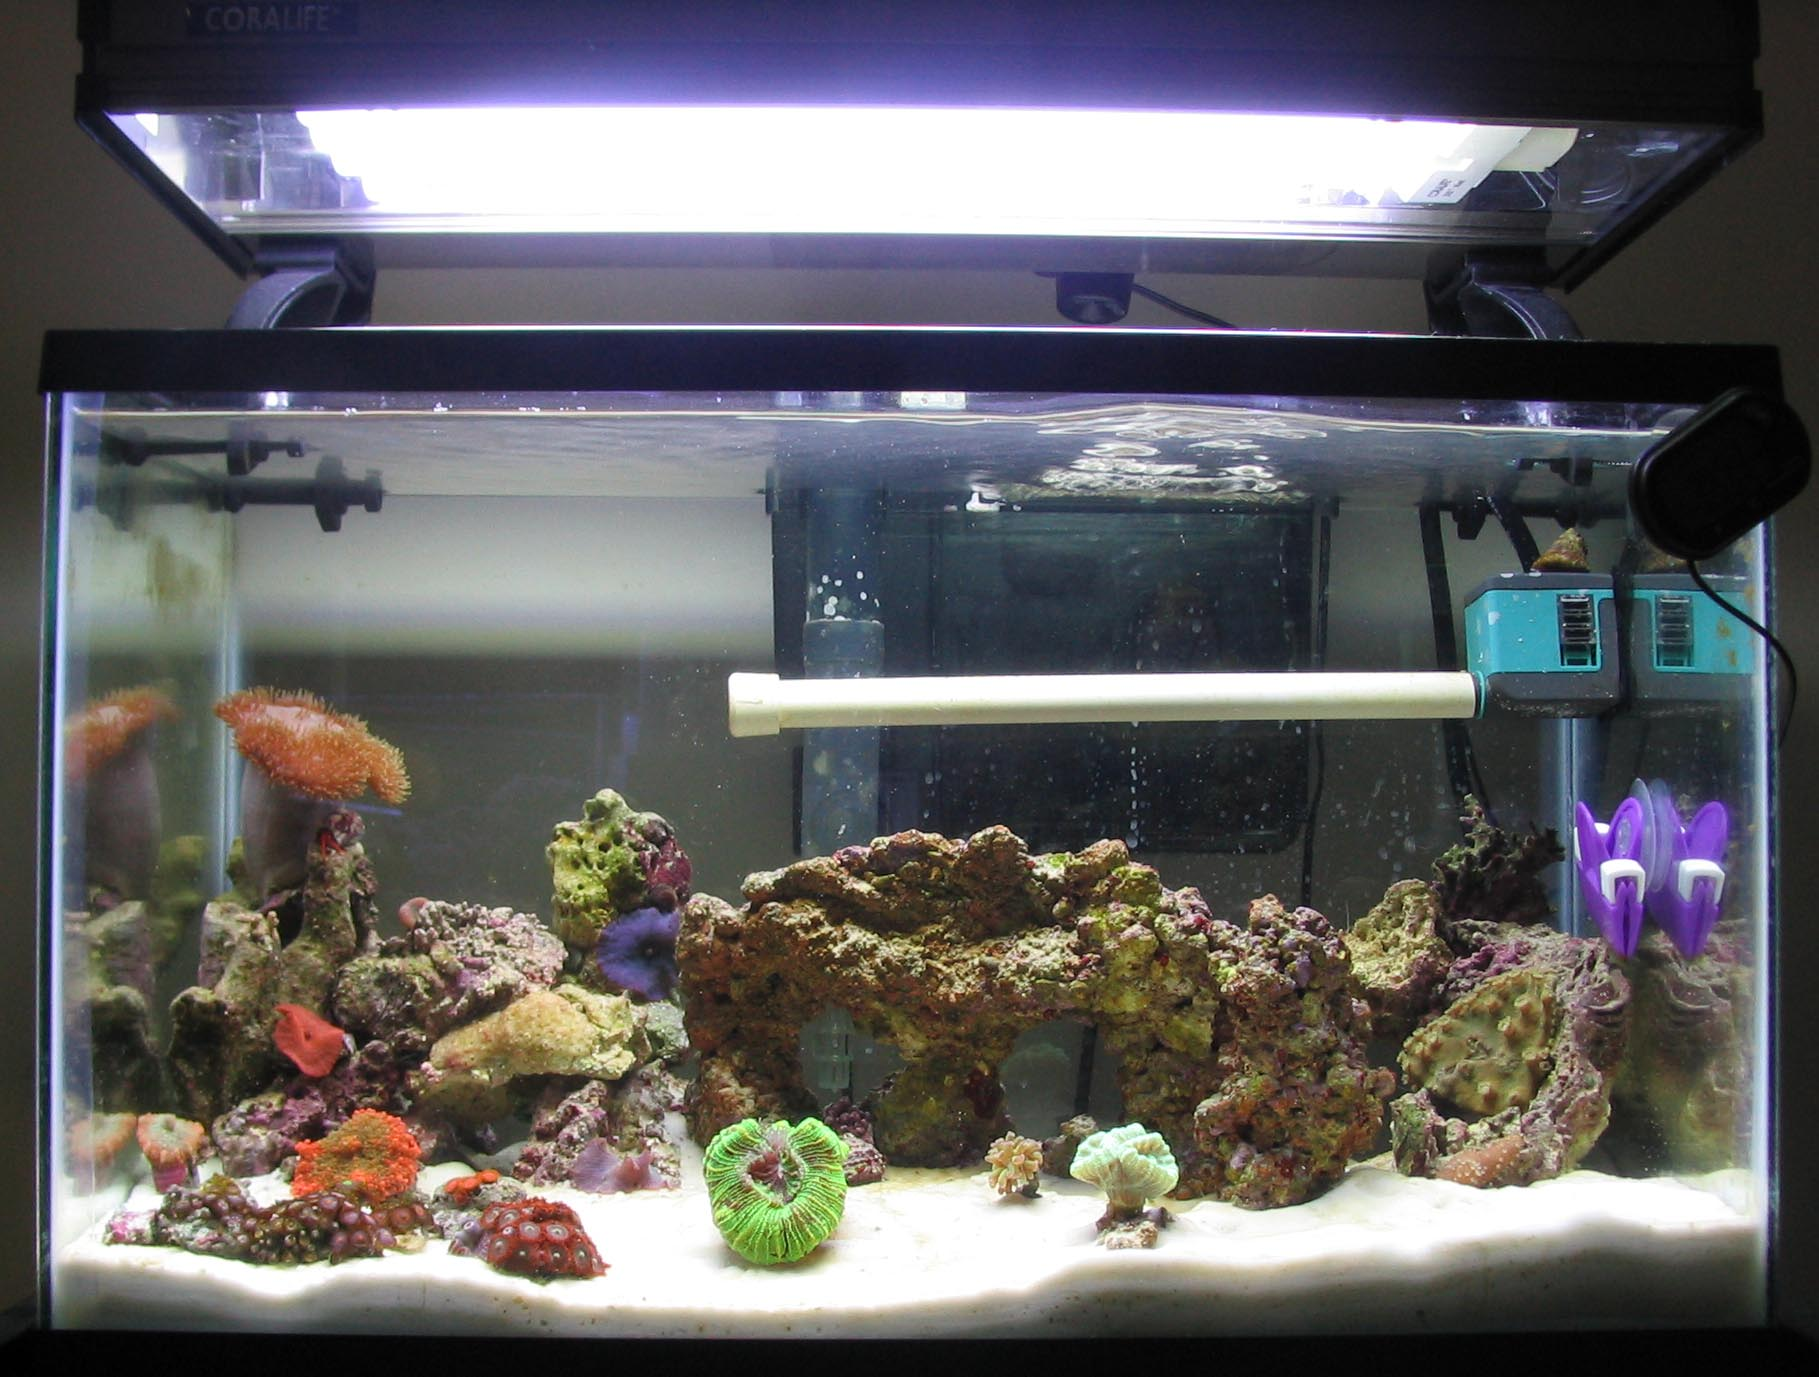 Saltwater fish tank 10 gallon 10g reef saltwater for 10 gallon fish tanks